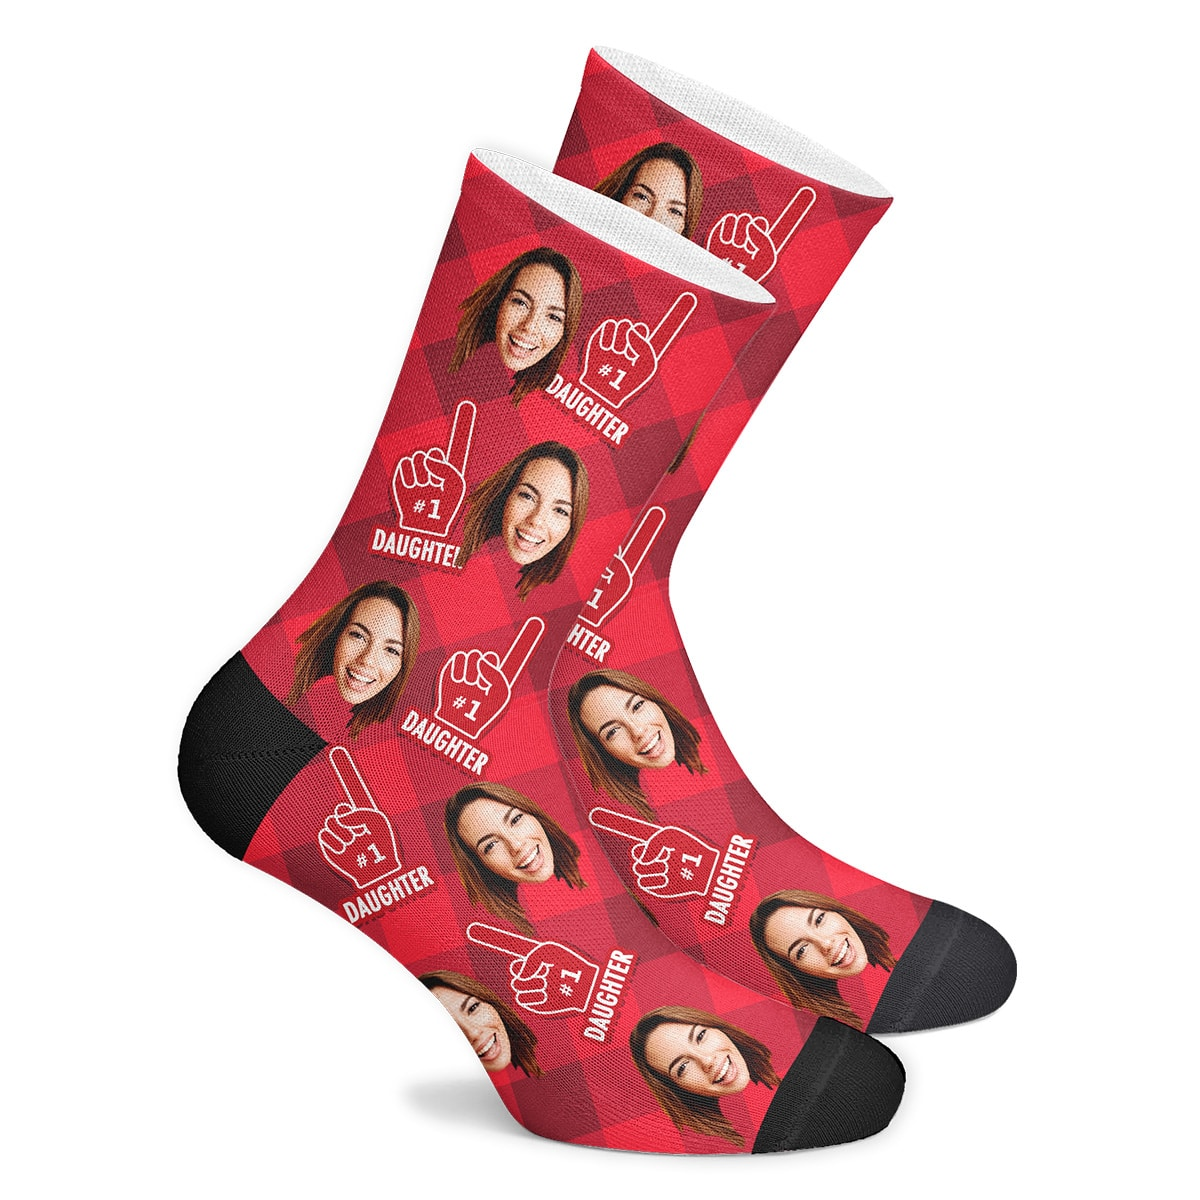 Custom #1 Daughter Fan Socks - MyPhotoSocks